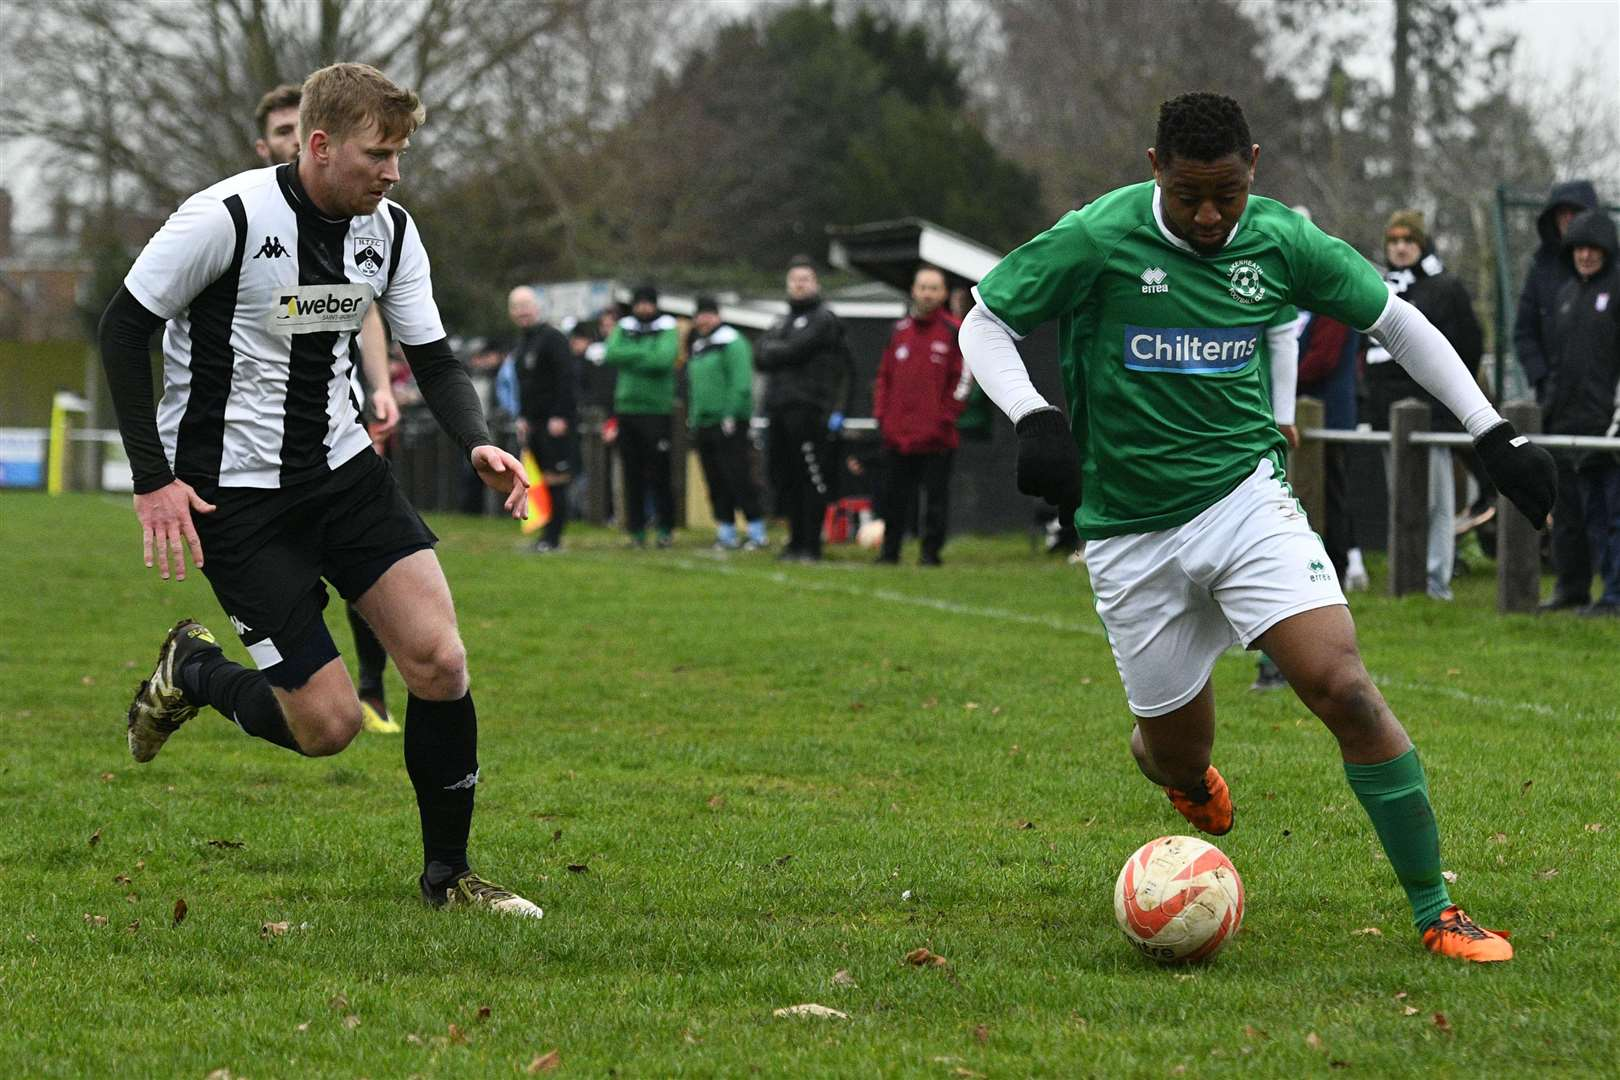 Football action from Harleston Town vs Lakenheath - Jake Anema (H) and Kelvin Enaro (L)...Picture by Mark Bullimore Photography. (6332748)